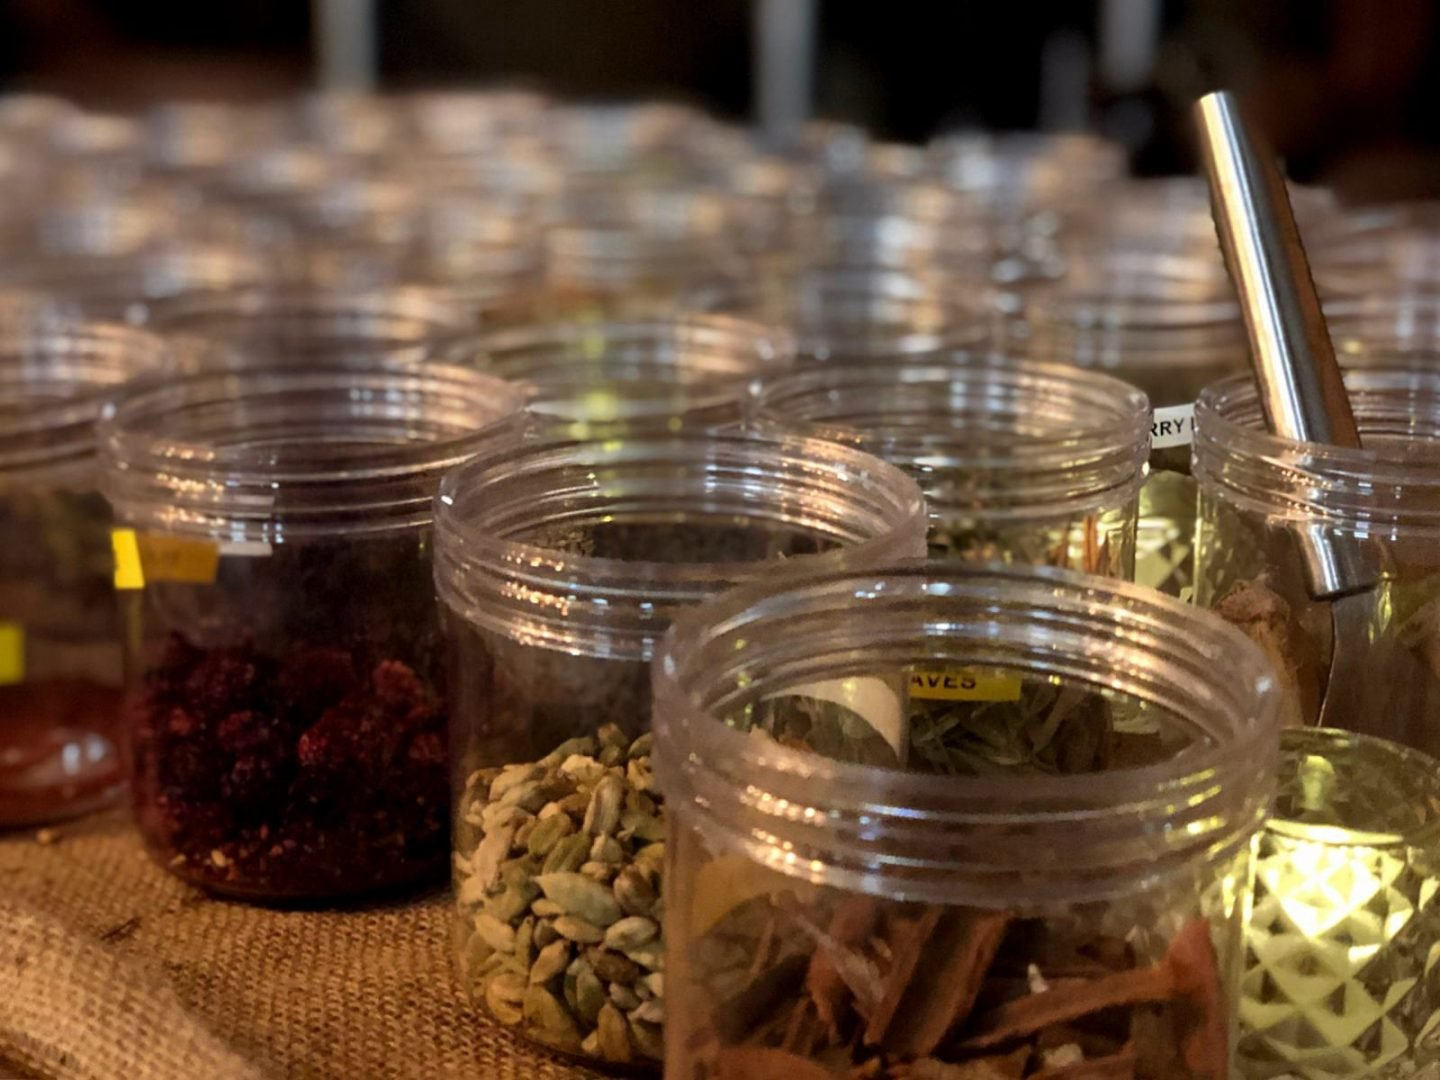 Choosing Botanicals For Gin